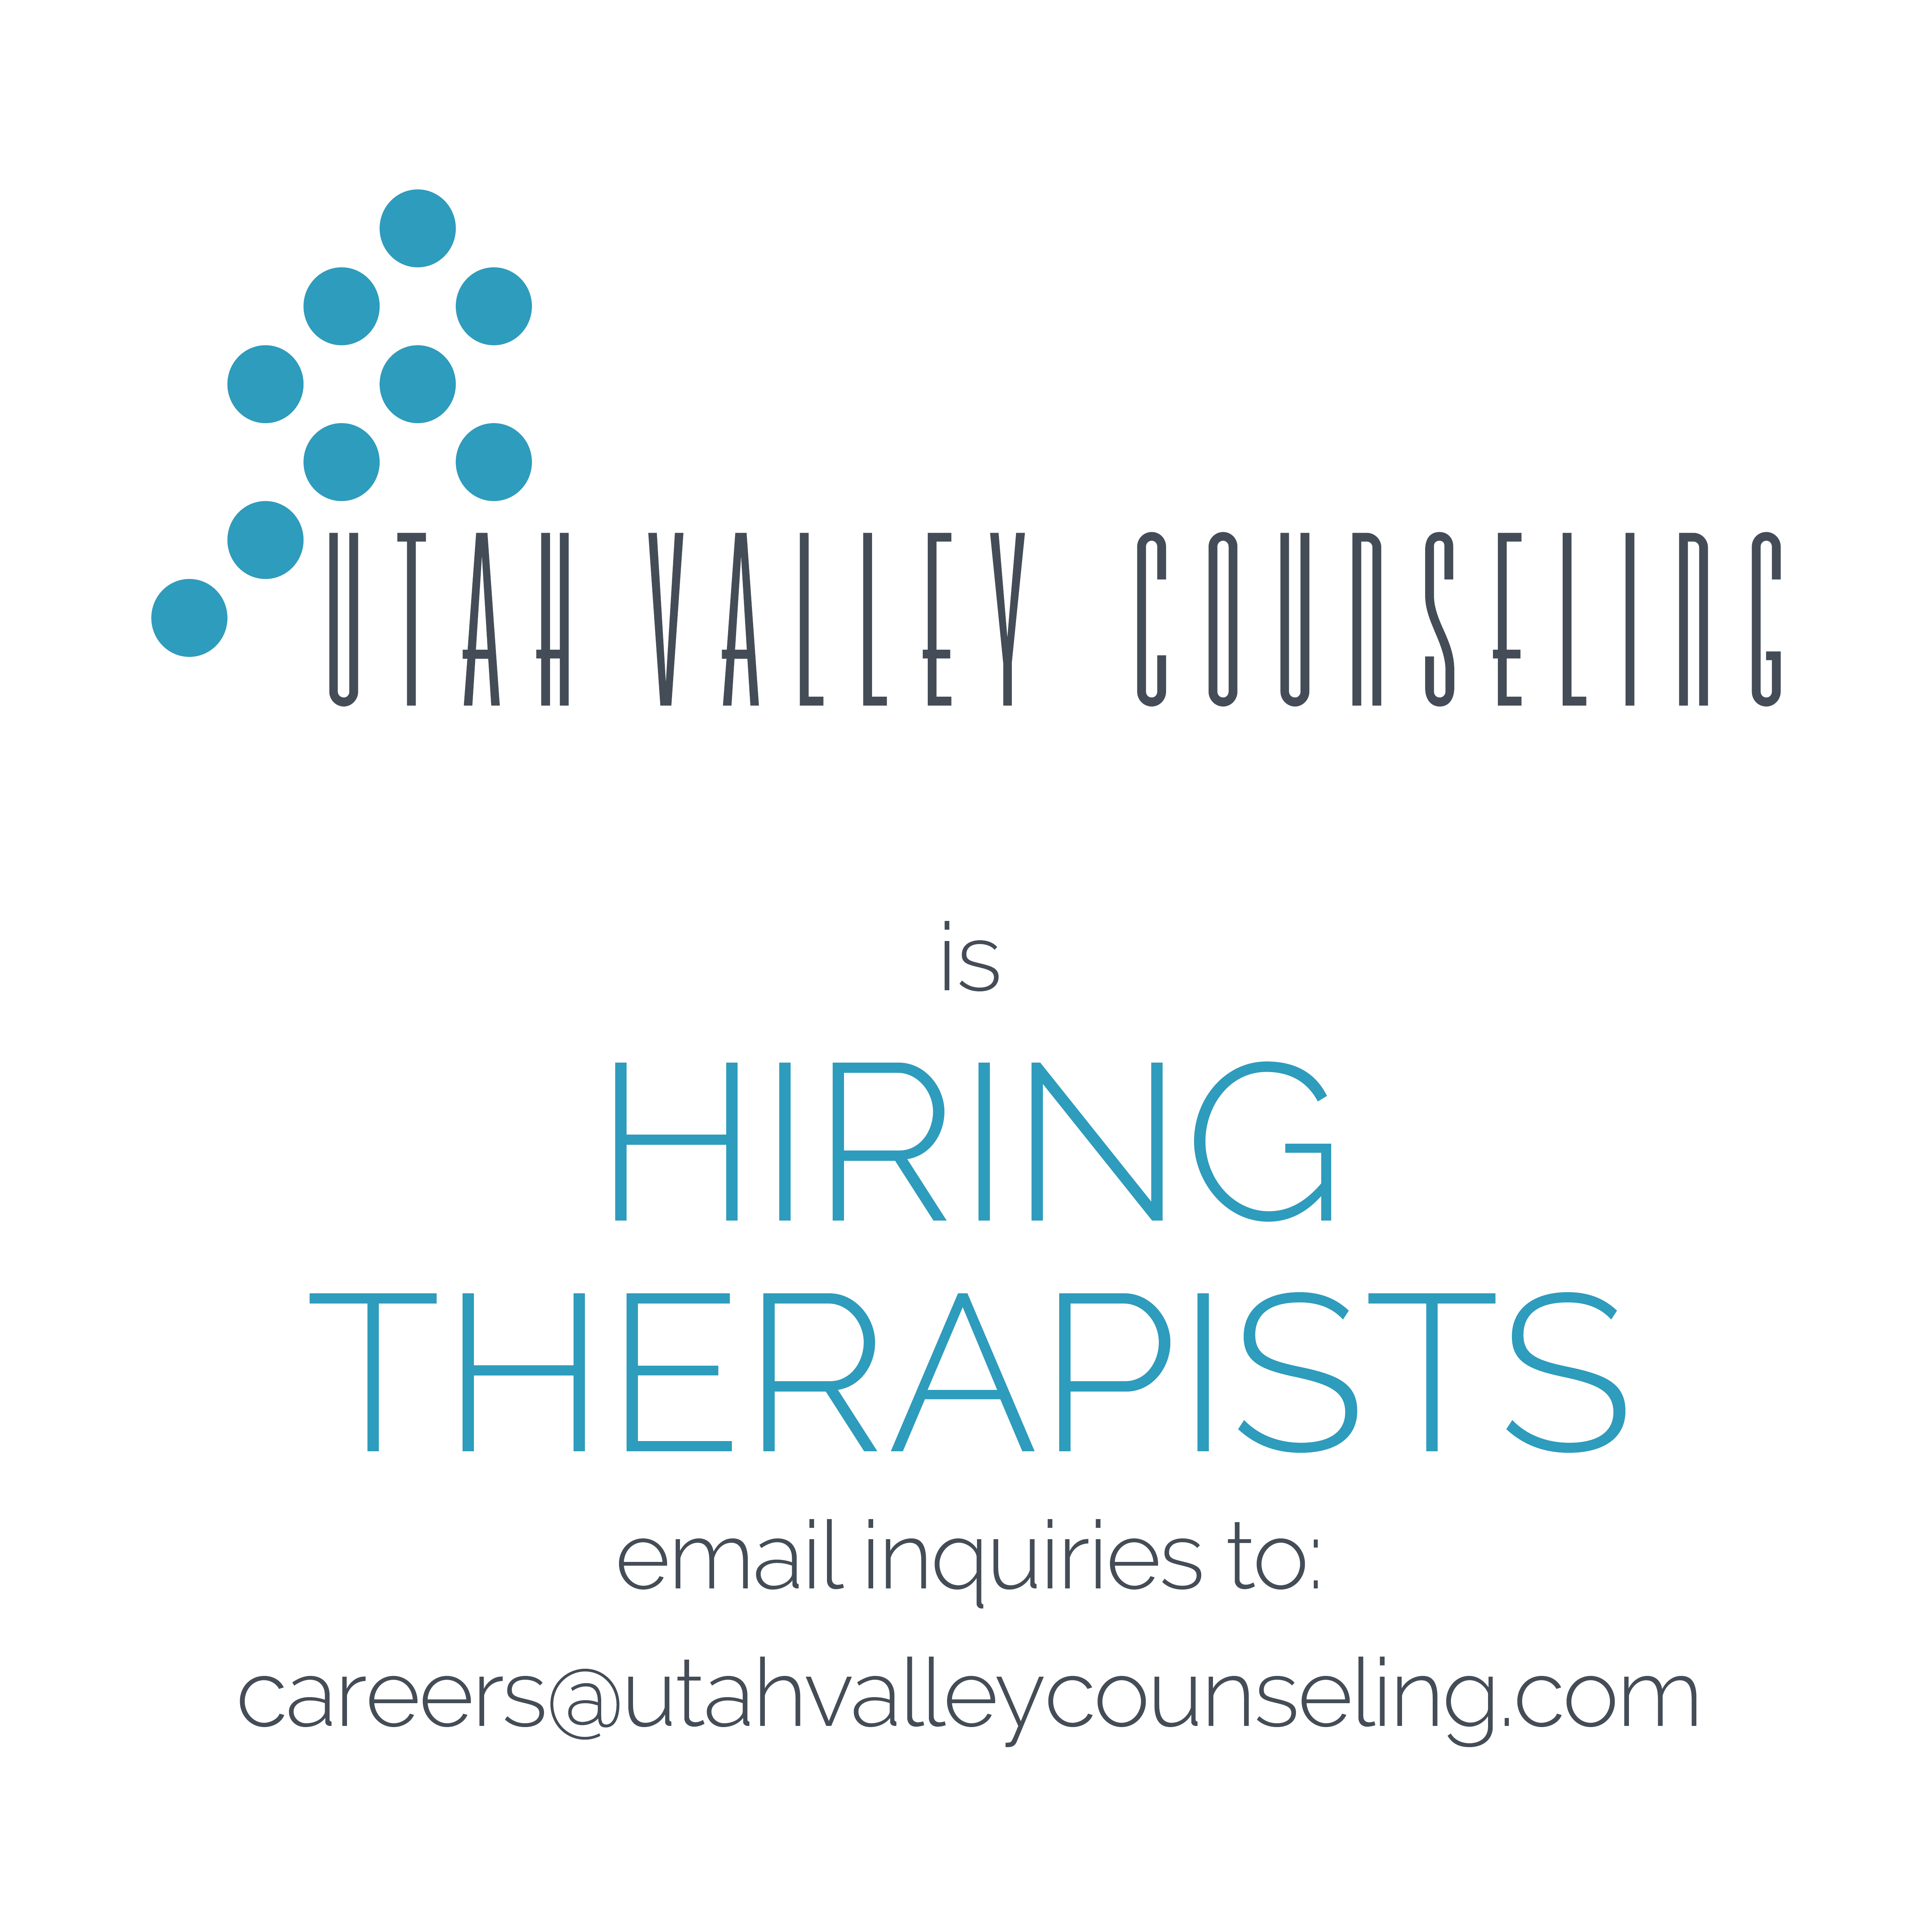 Hiring-Therapists-Utah-Valley-Counseling